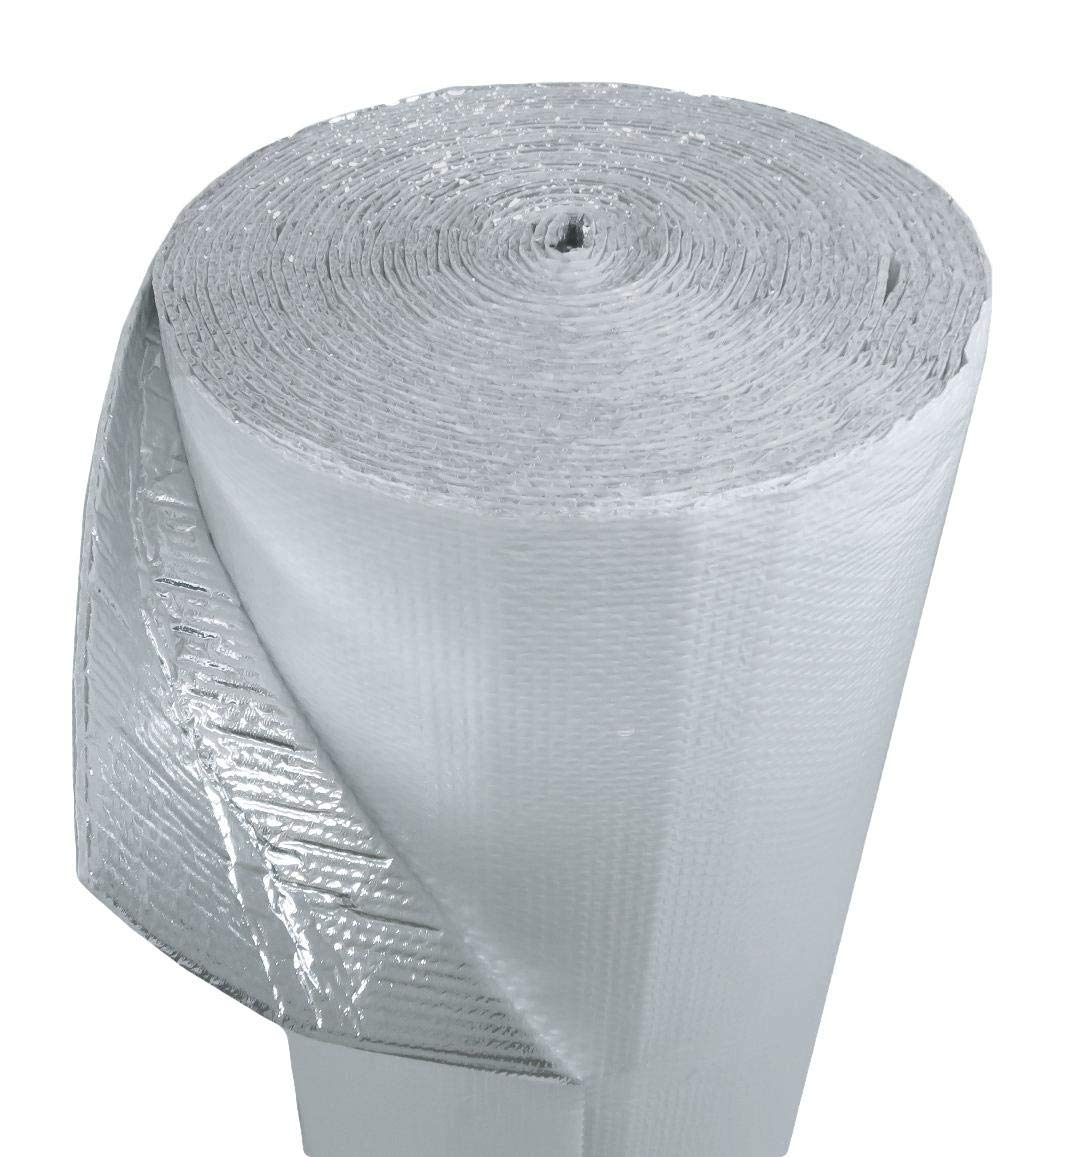 US Energy Products 200sqft 24''x100' White Single Bubble Reflective Foil Insulation Thermal Barrier Industrial Strength, Commercial Grade, No Tear Radiant Barrier Wrap for Weatherproofing Multipurpose by MWS